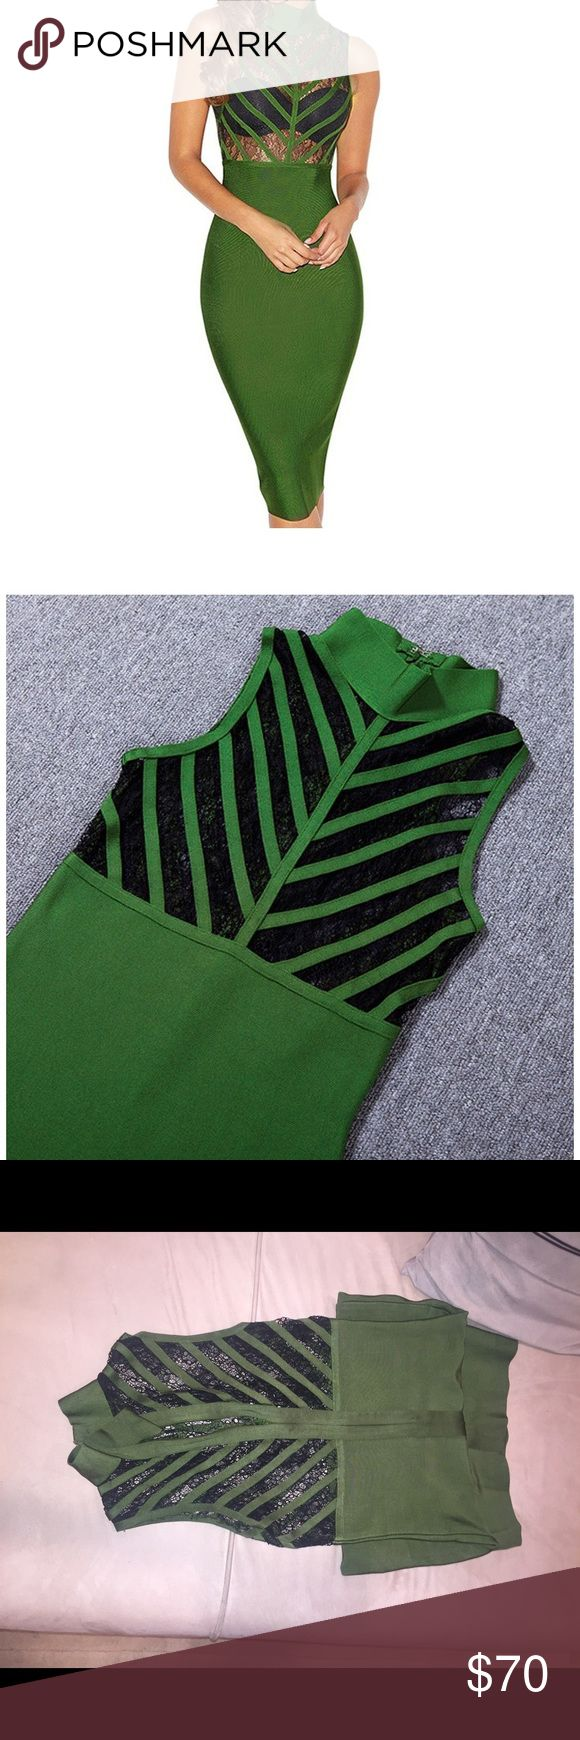 Green Bandage dress with lace Like new Only worn once. Green Bandage dress with lace.  Length is right on the knee just like pictured in my listing. Please note this is not Herve leger or BCBG it's a regular bandage dress Herve Leger/BCBG Bandage Dresses Mini